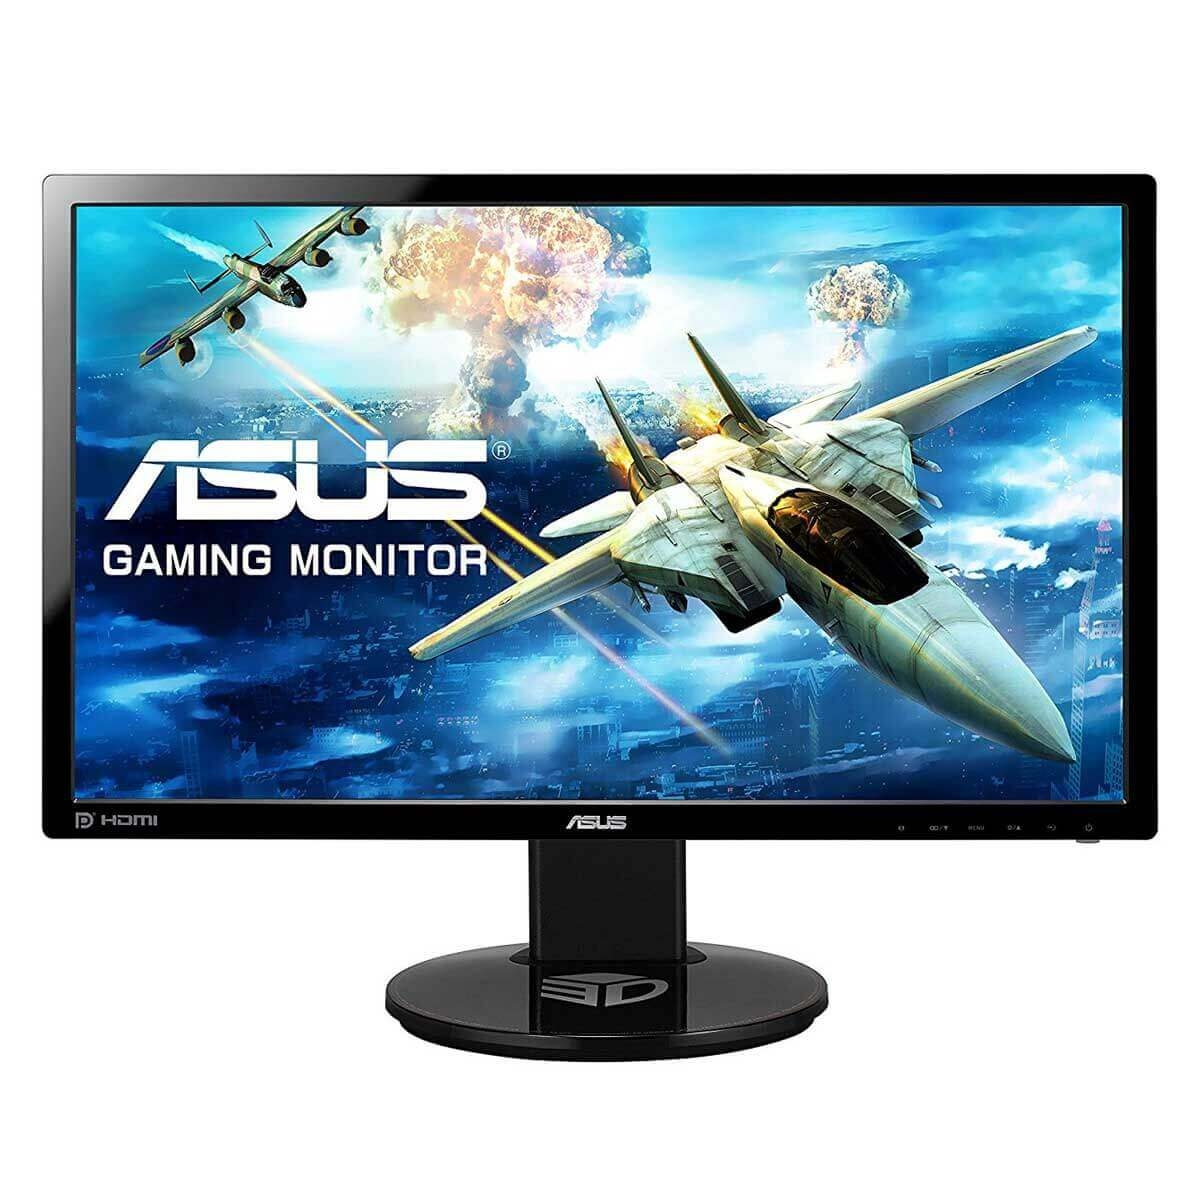 ASUS VG248QE 24 inch LED 3D Monitor